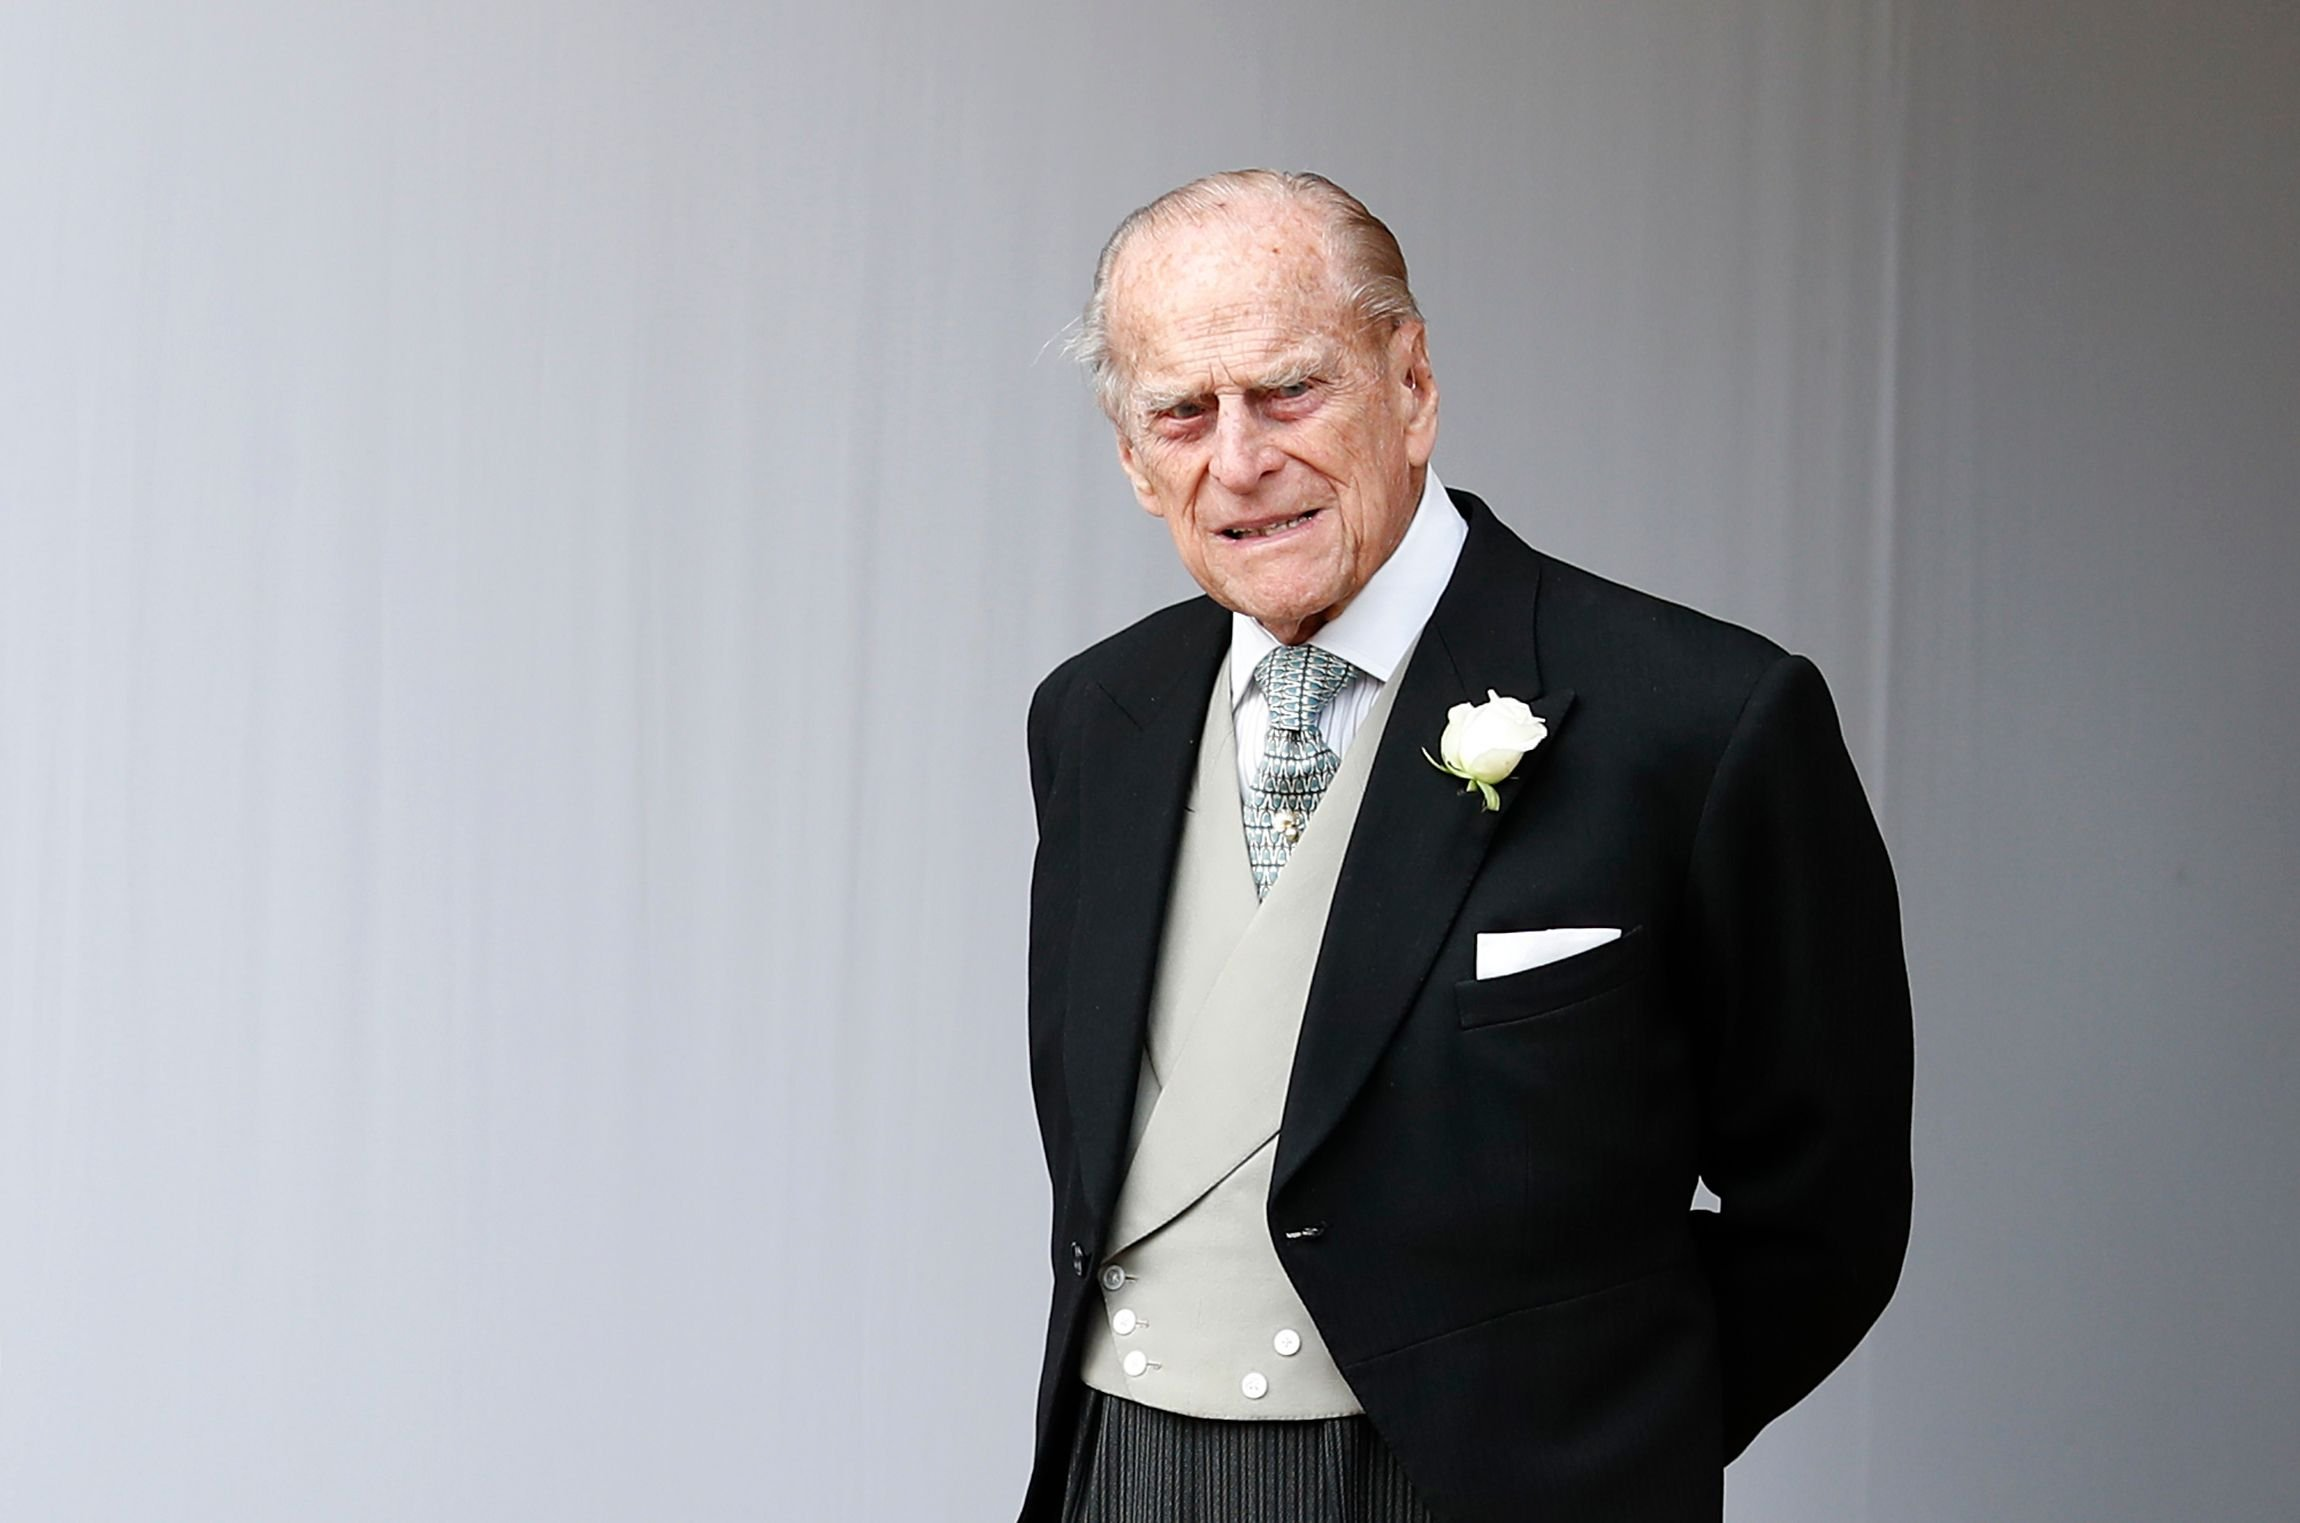 Prince Philip at the wedding of Princess Eugenie to Jack Brooksbank at St. George's Chapel on October 12, 2018. | Getty Images